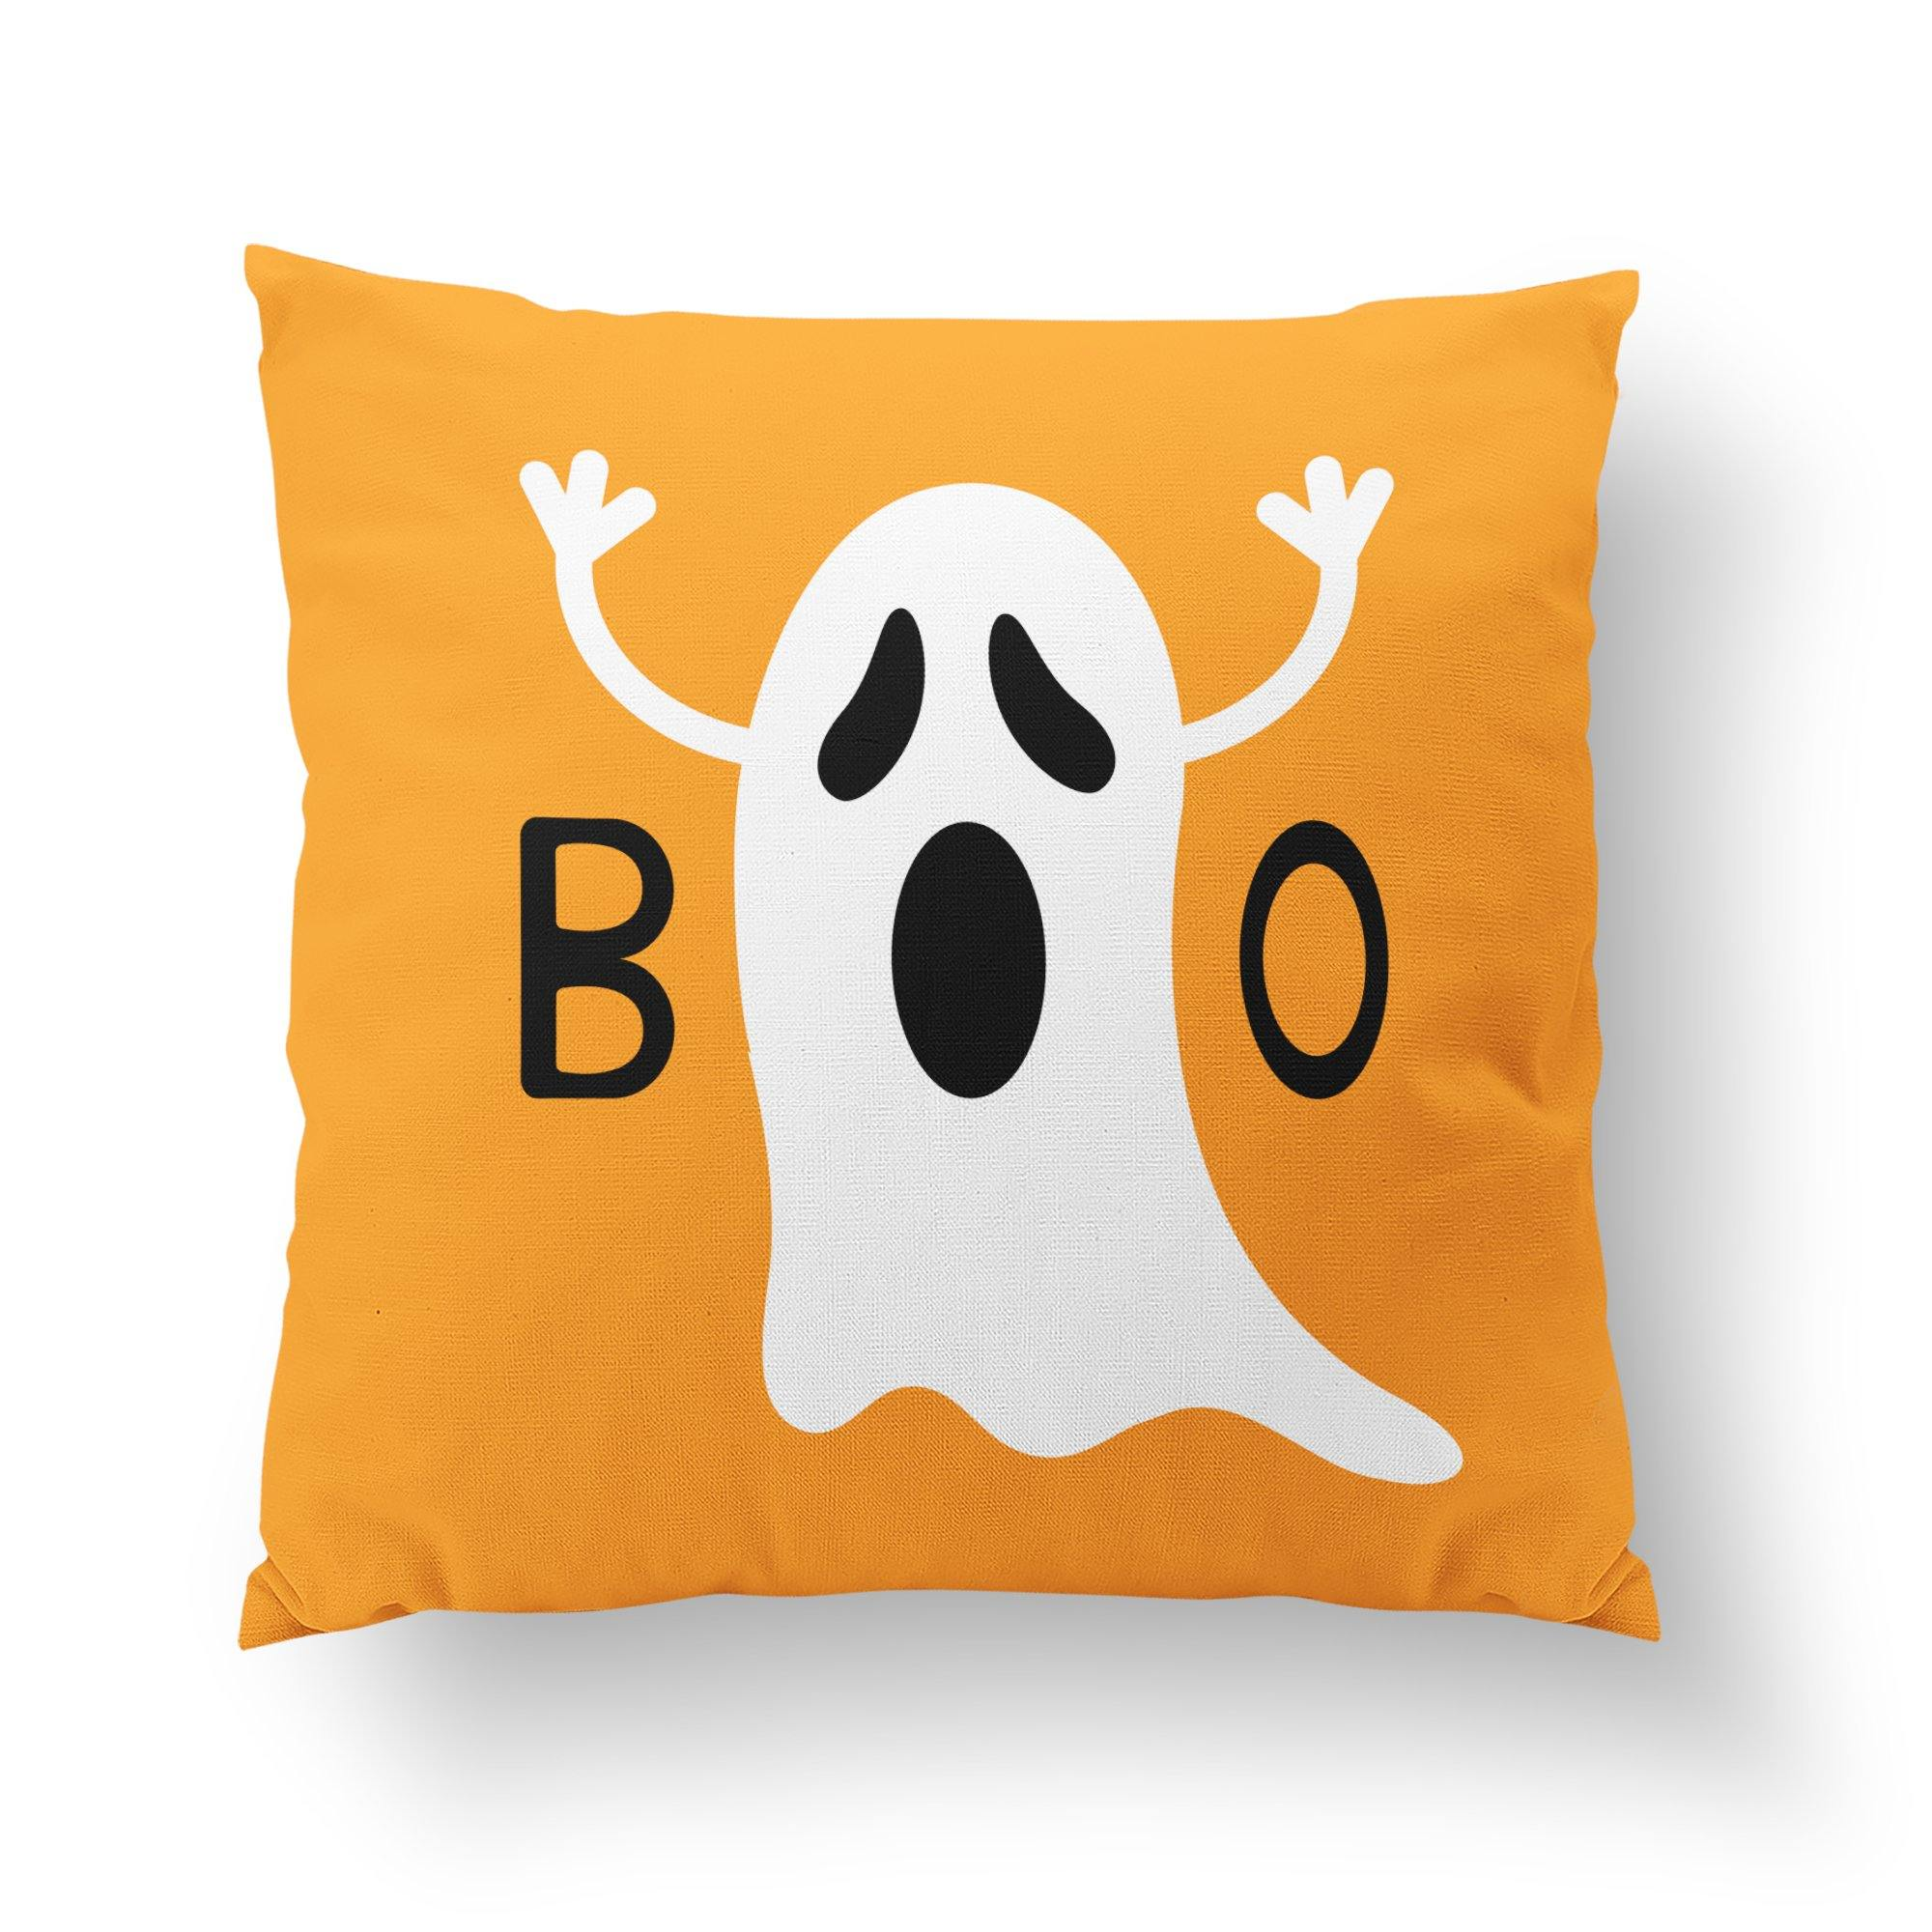 Boo Halloween Decorative Pillow